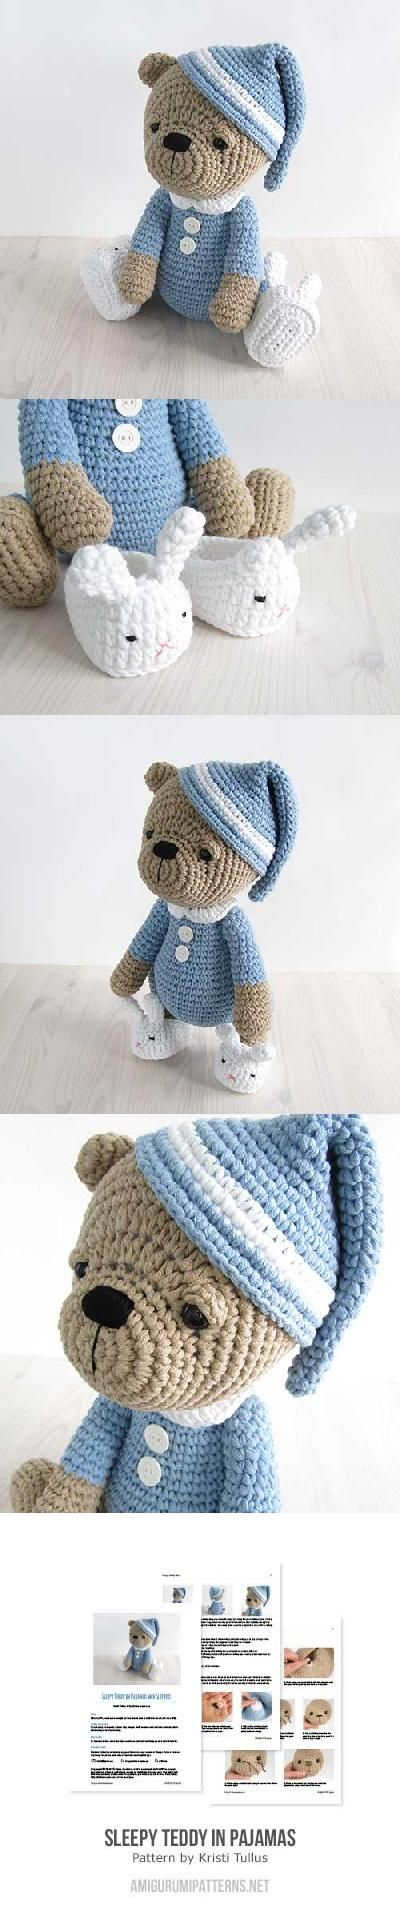 Sleepy teddy in pajamas amigurumi pattern by Kristi Tullus | Oso de ...